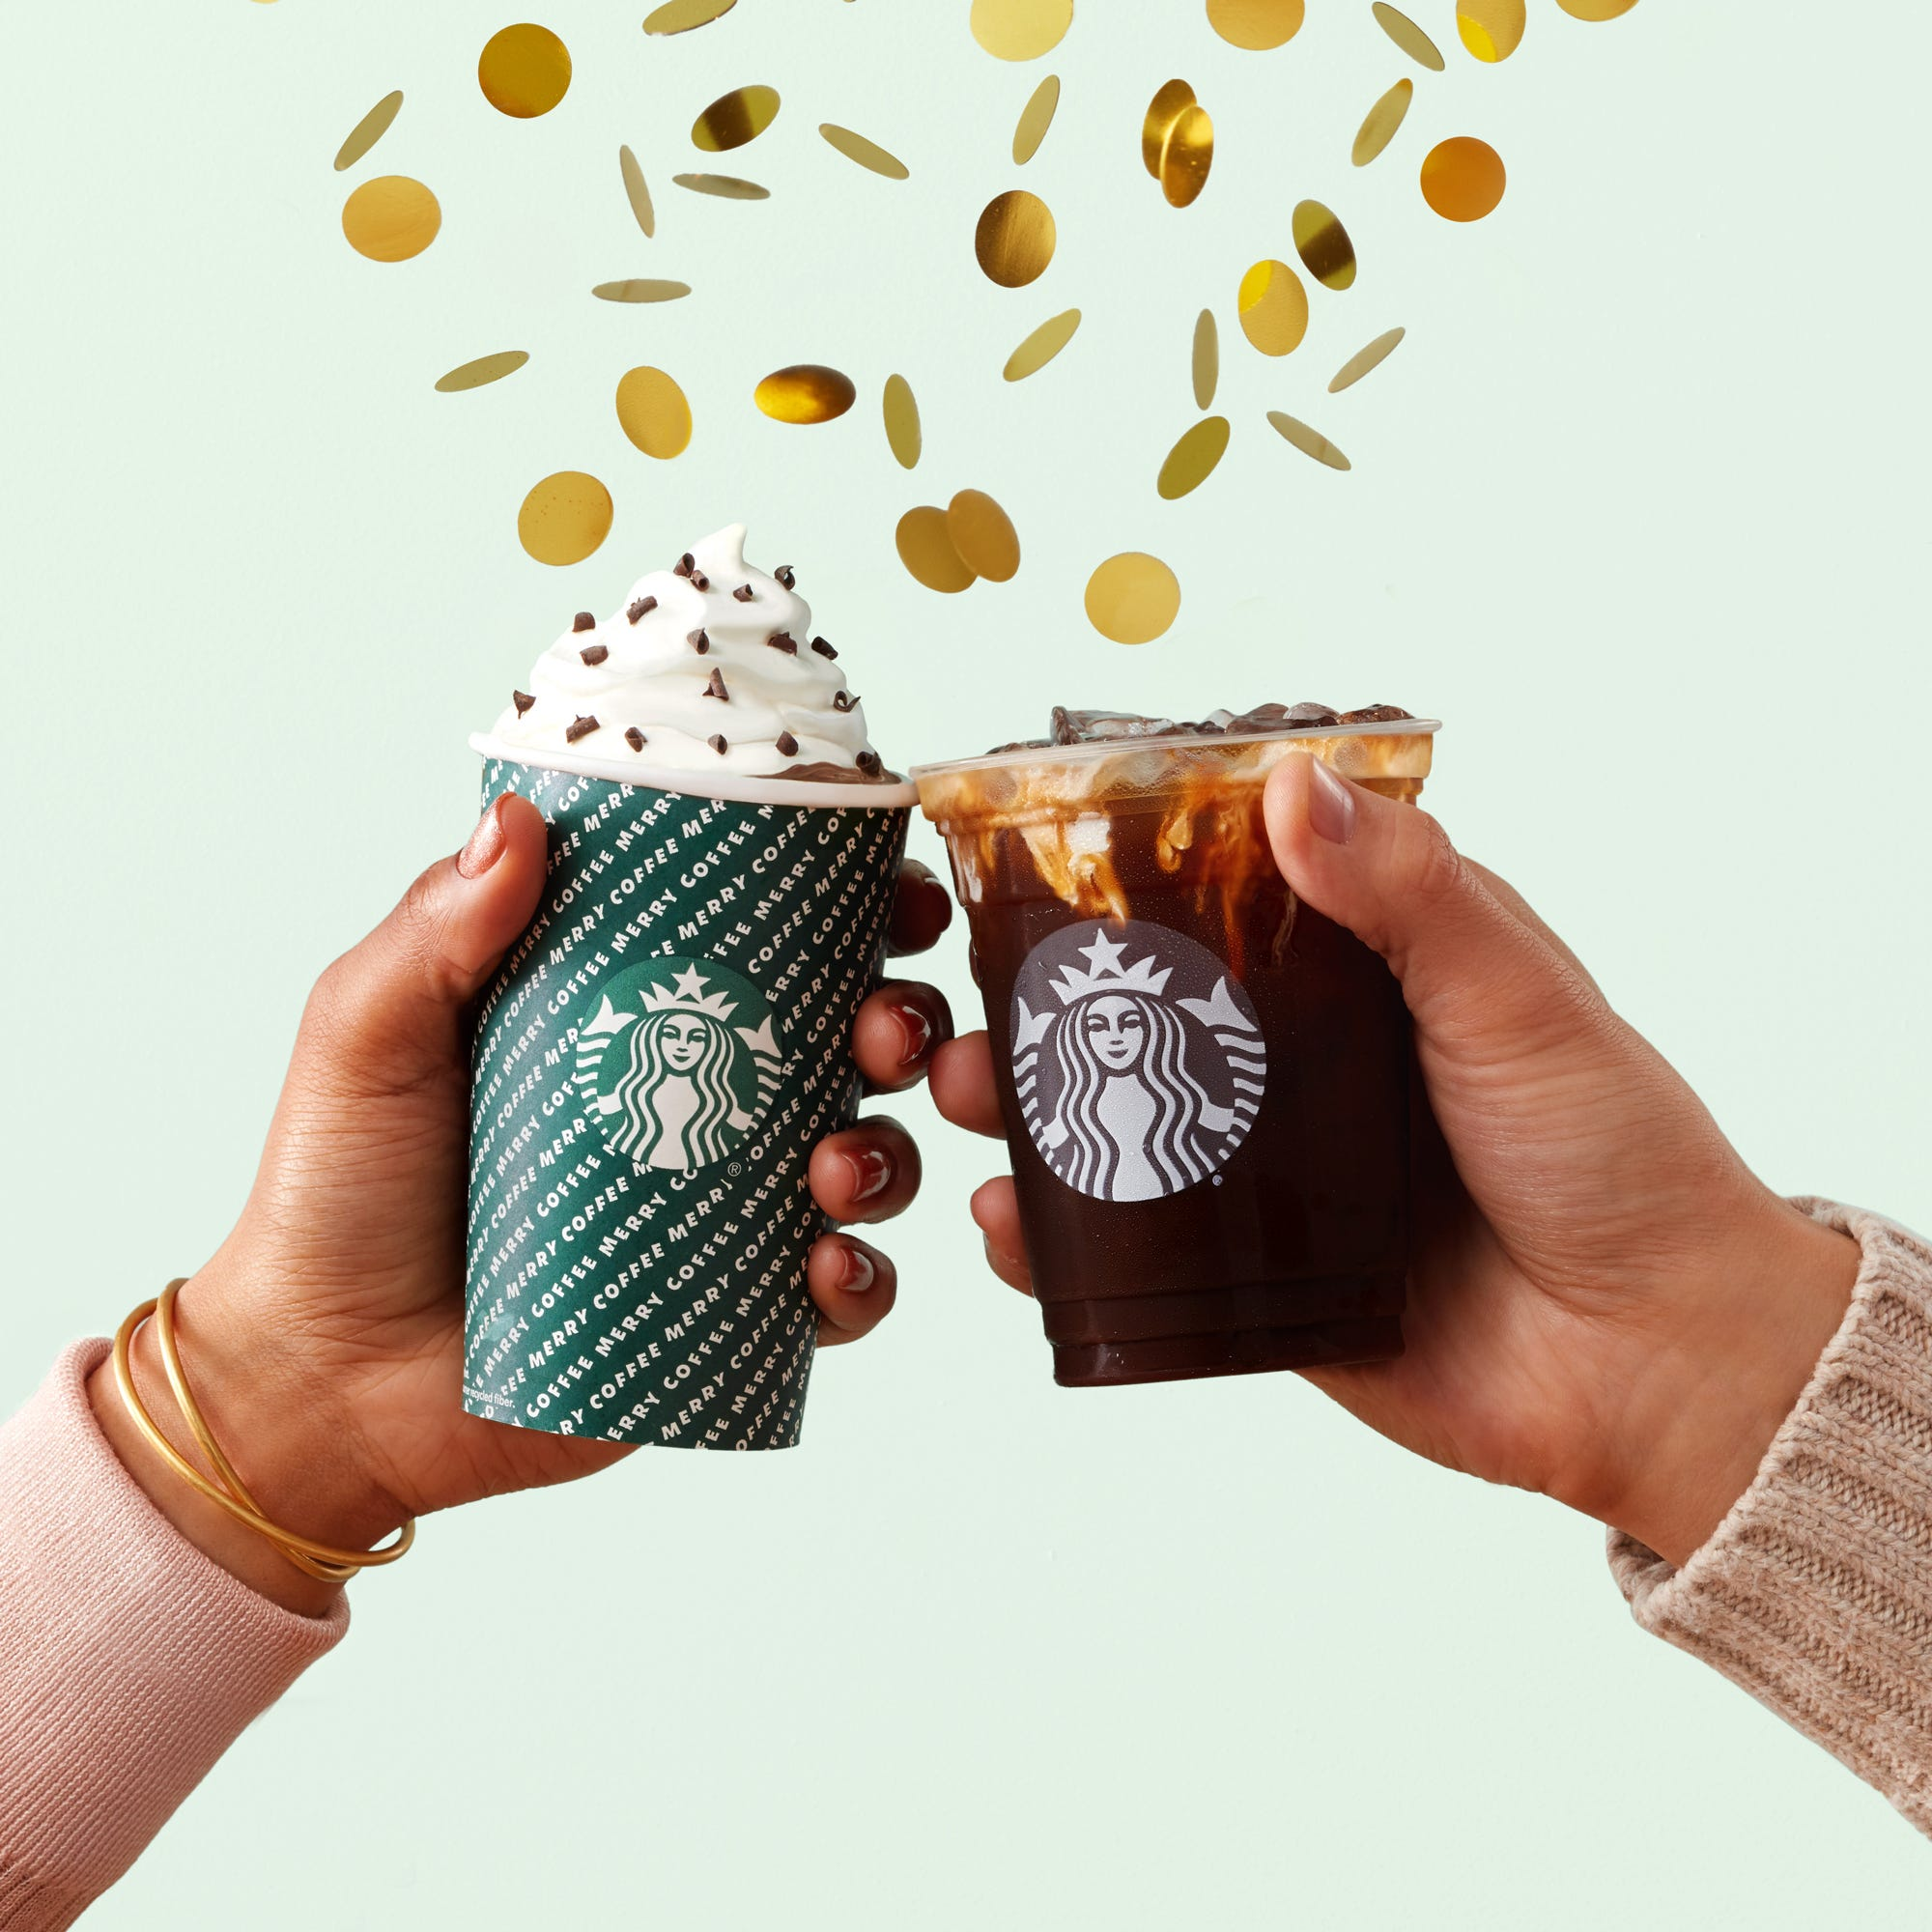 Free Starbucks Coffee How To Get Free Drinks Through End Of 2019